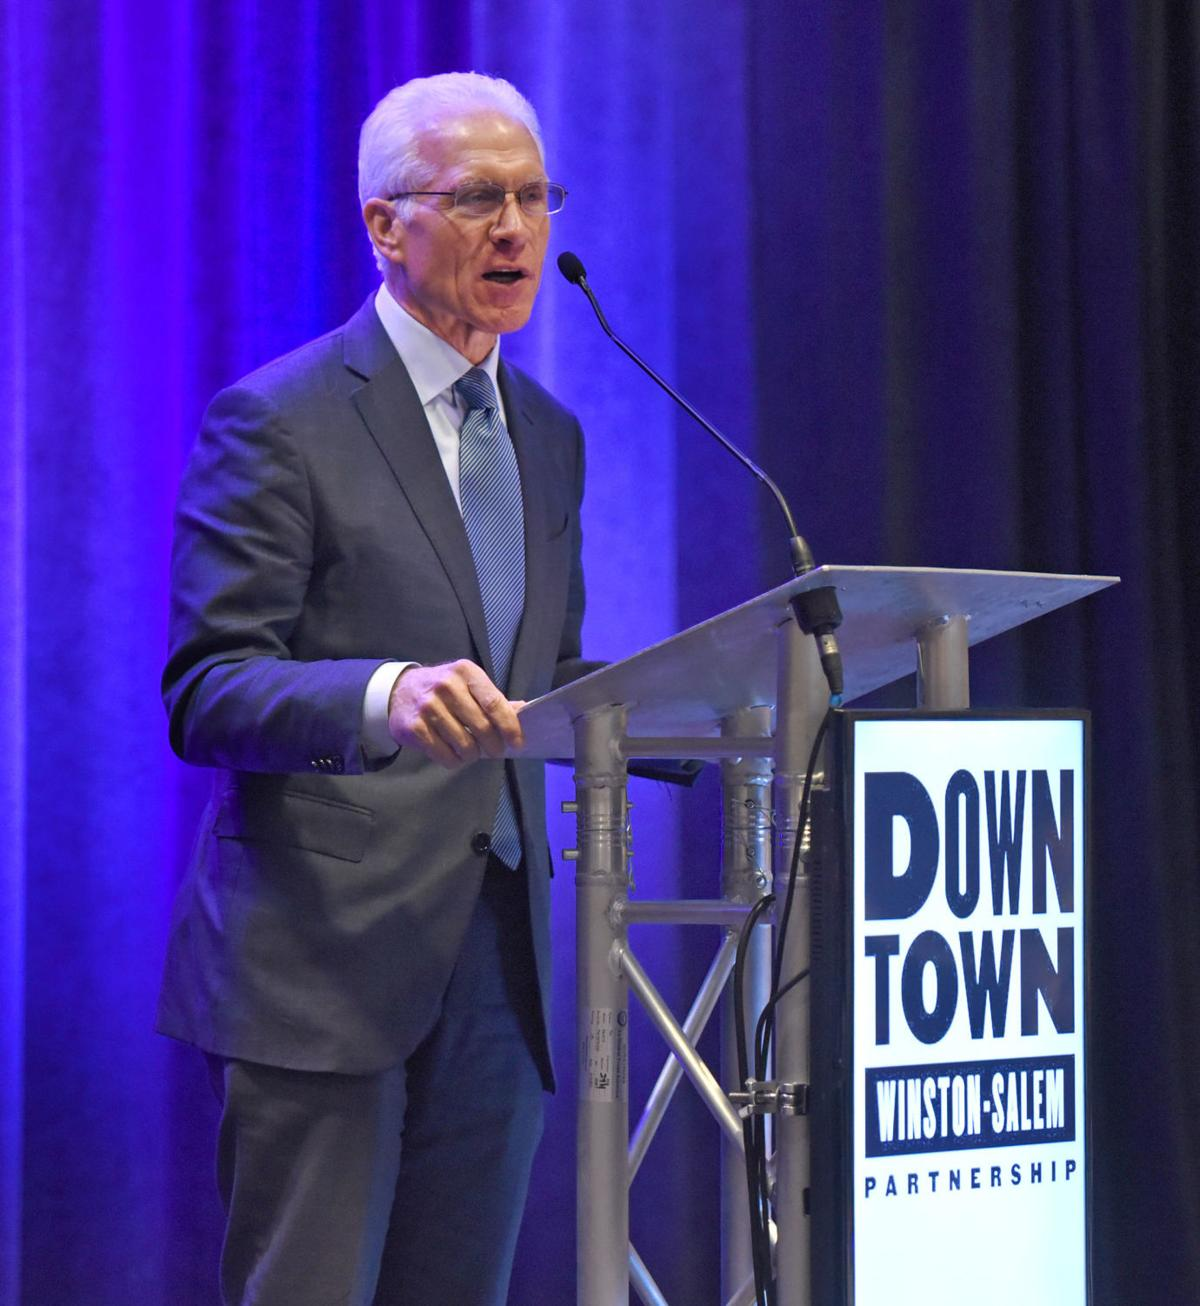 Downtown Winston-Salem Partnership luncheon